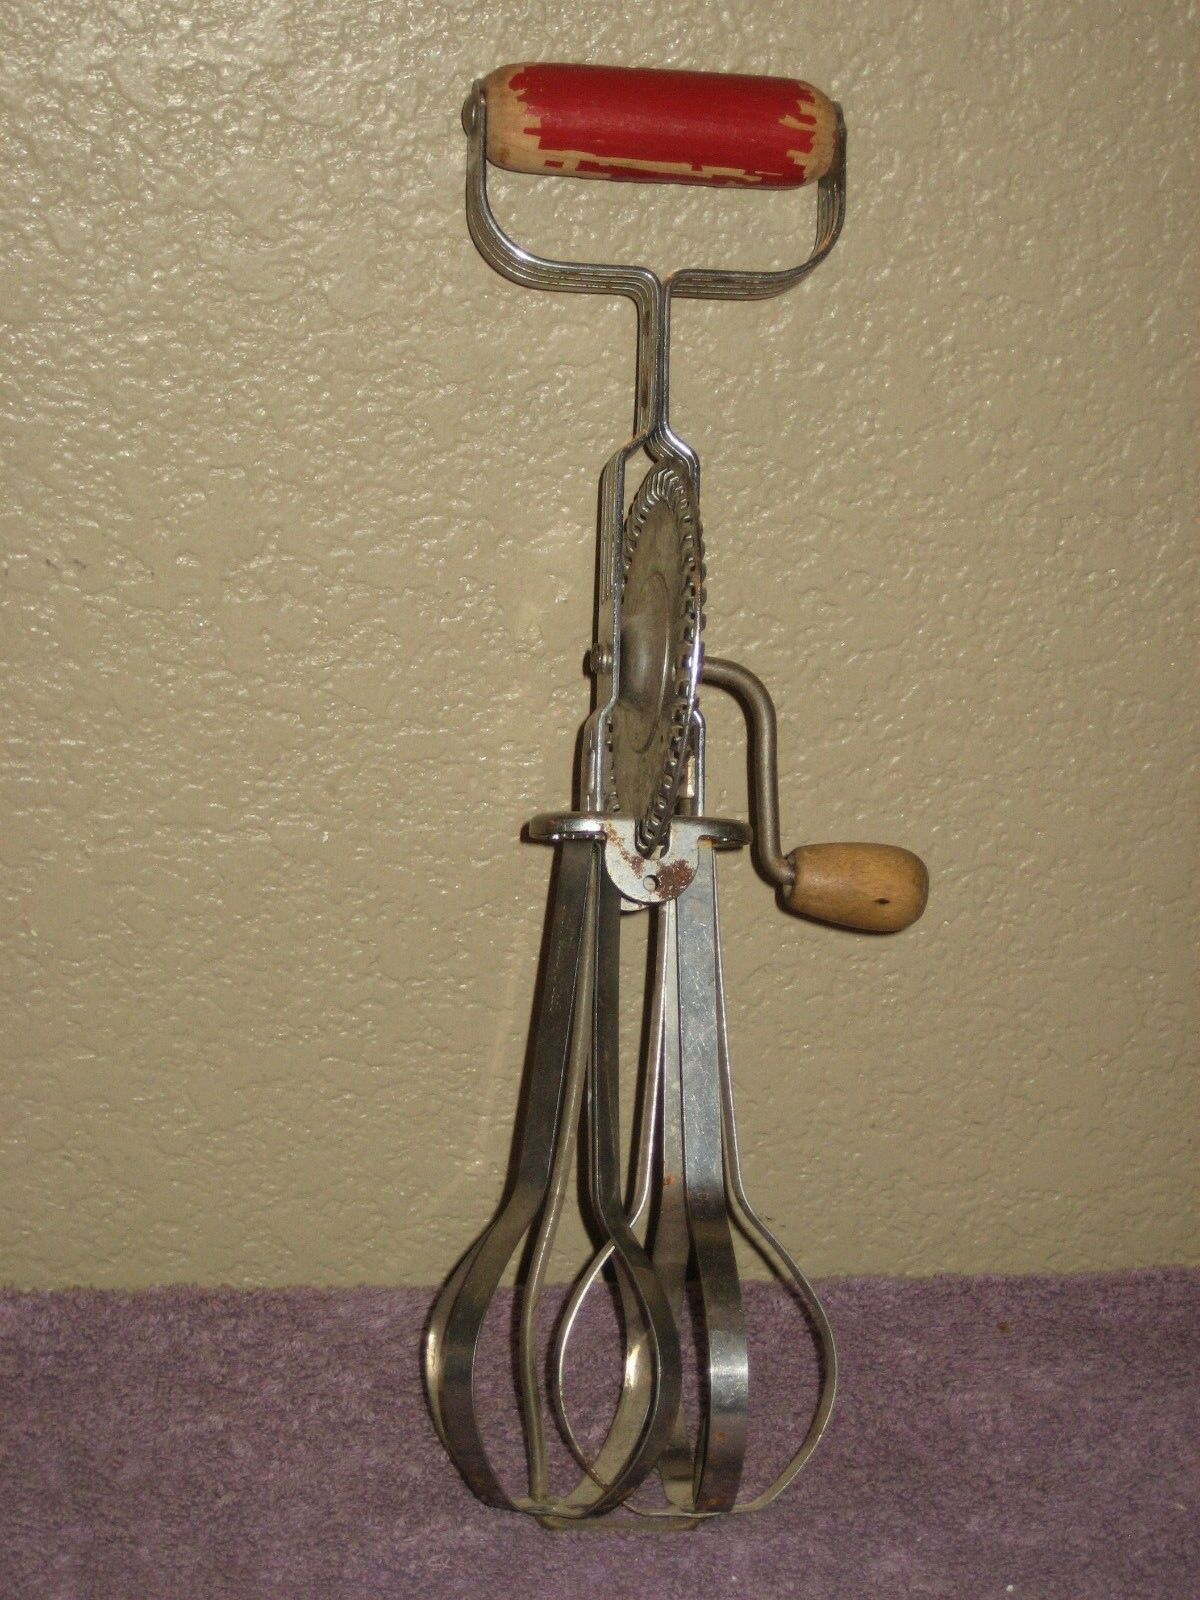 Vintage Ekco Products Company - A&J Stainless Steel Drive Egg Beater Wood Handle image 2